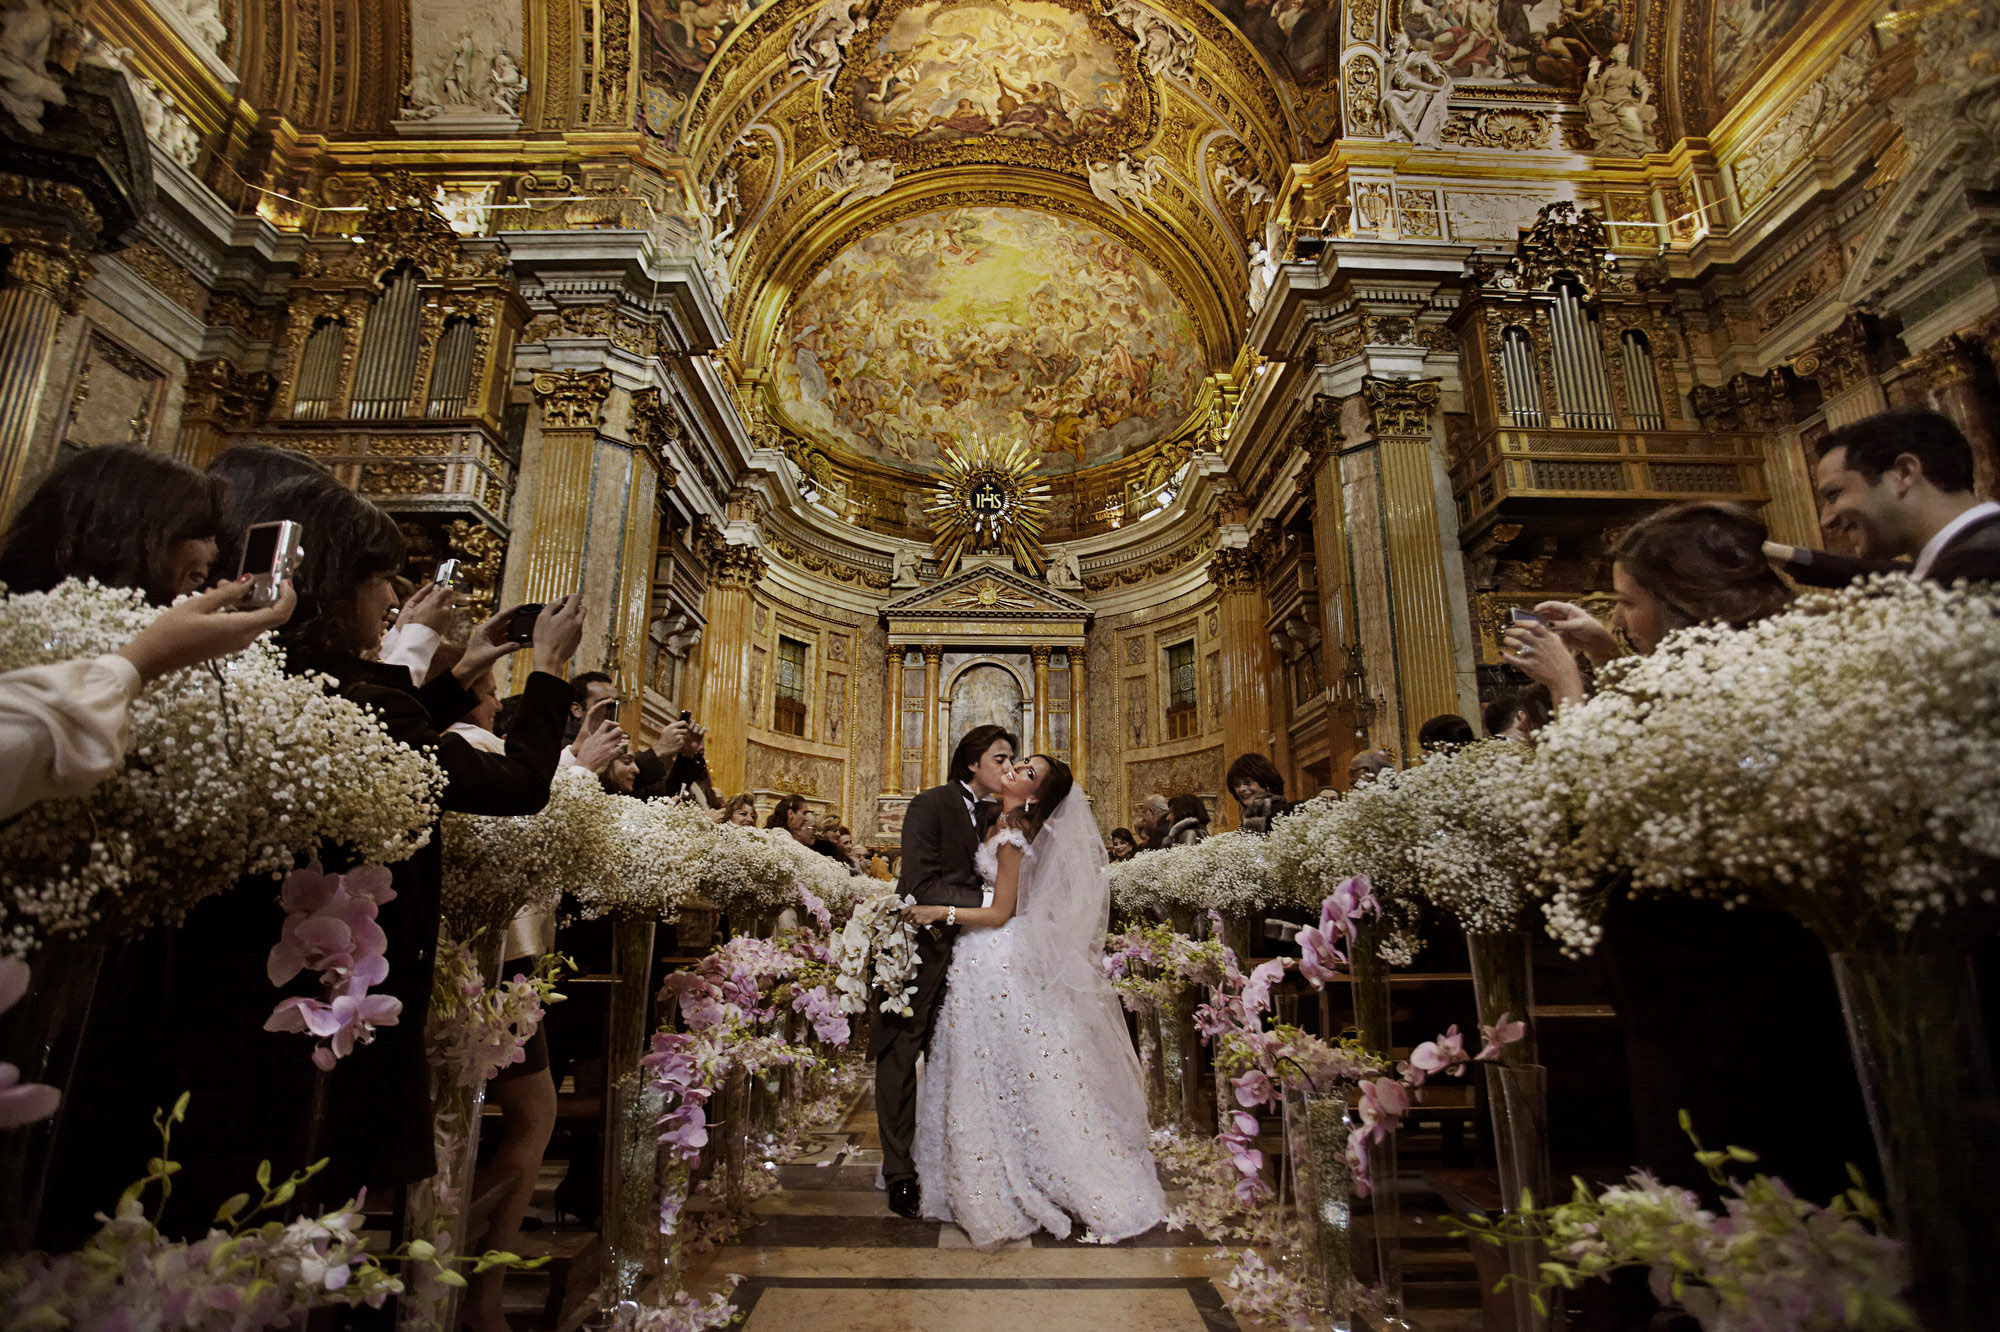 Ceremony kiss in cathedral - photo by Jerry Ghionis